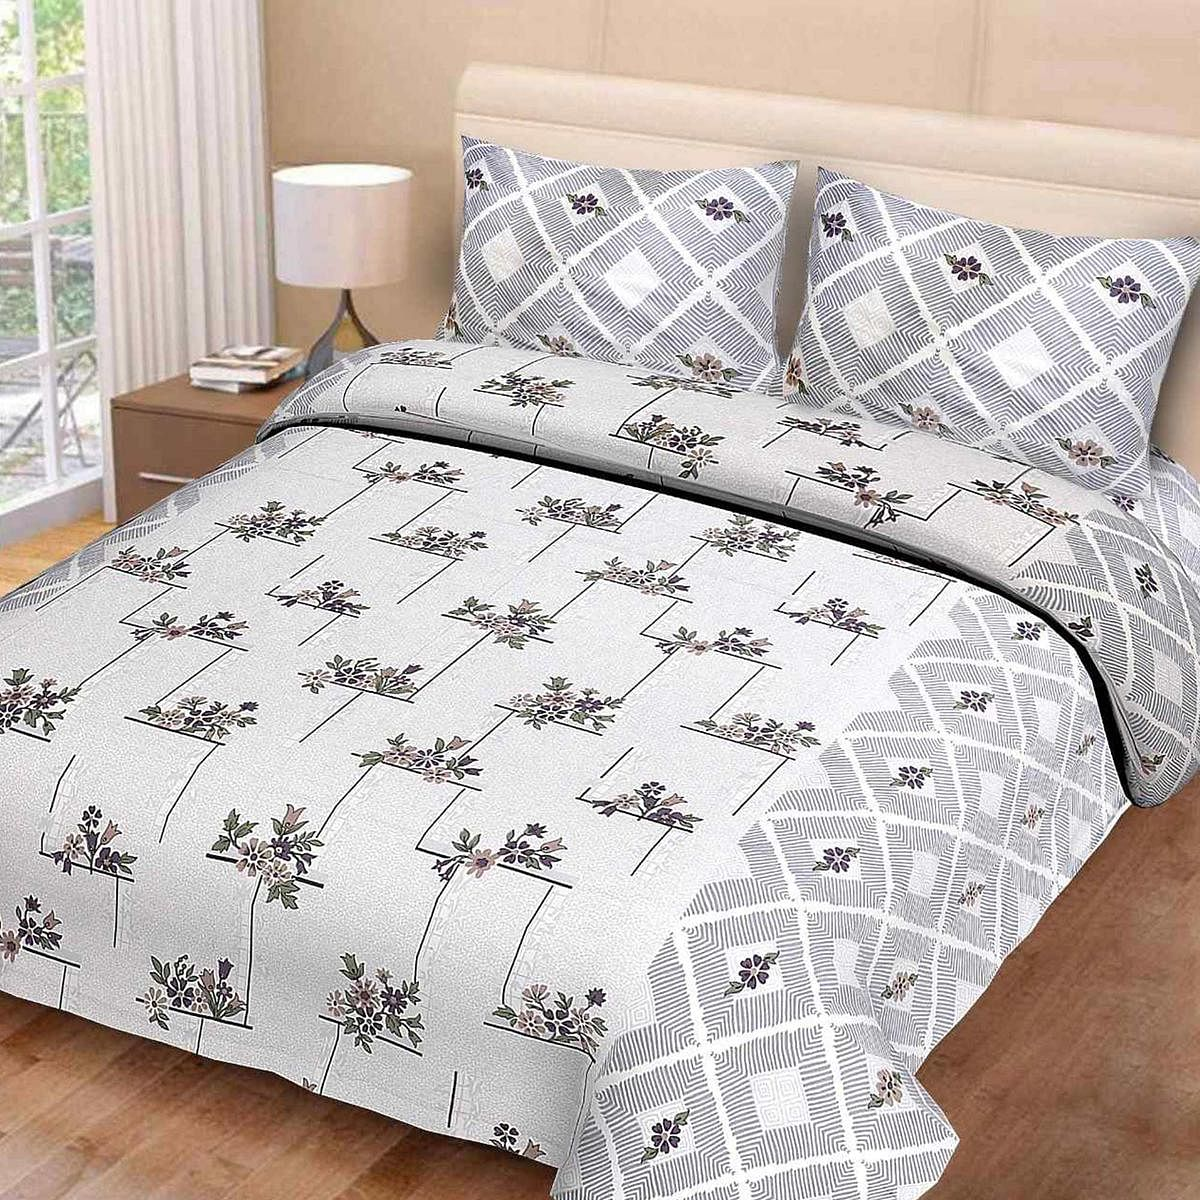 eCraftIndia - 144 TC Pure Cotton Floral Print Double Bed Bedsheet (90 In x 108 In) with 2 pillow cover - Grey